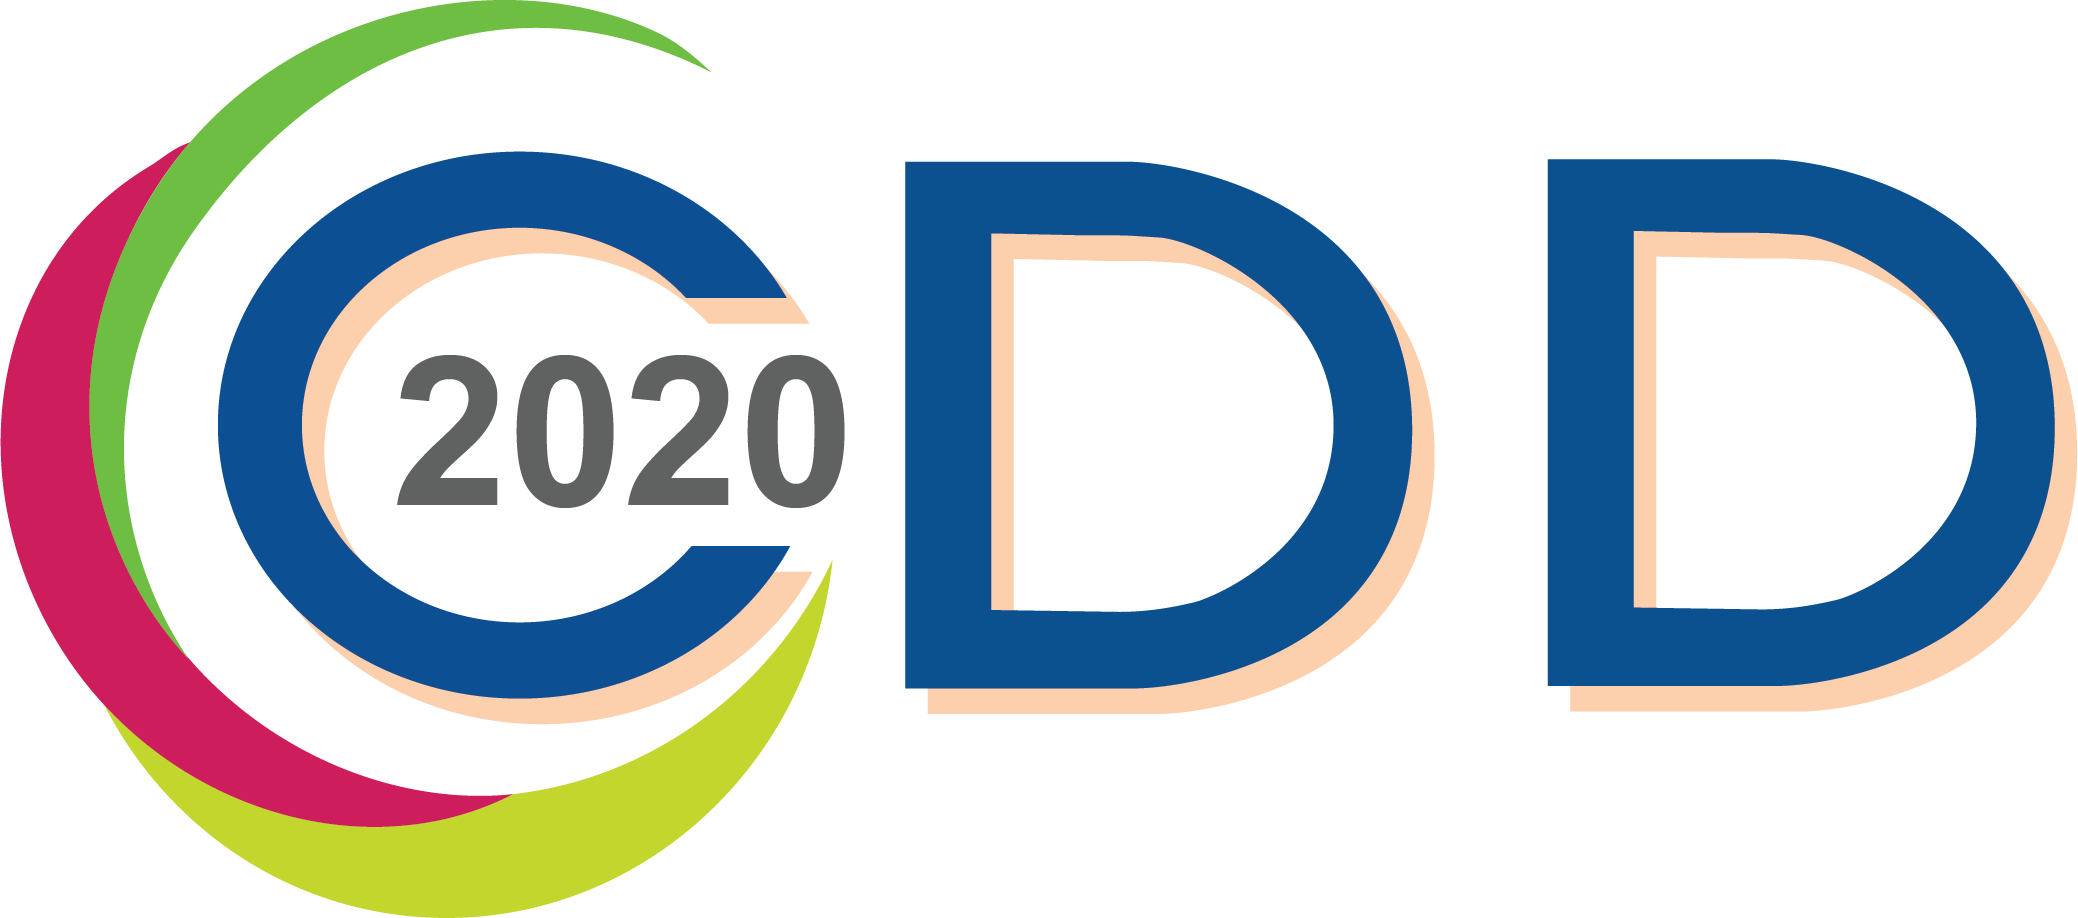 CDD2020 Conference